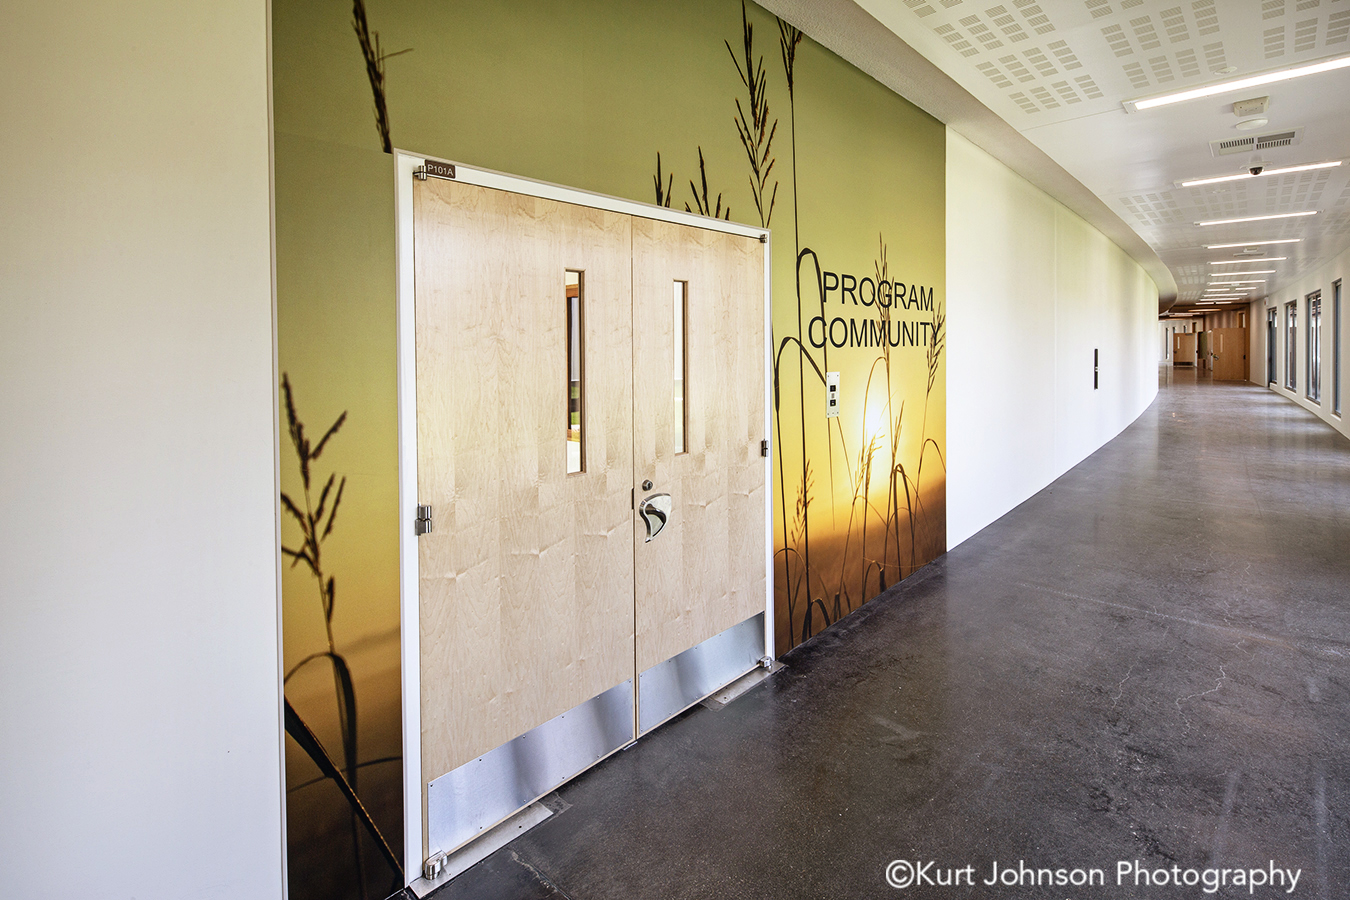 fulton state hospital missouri mo behavioral heath Koroseal type II vinyl wallcovering grass landscape corridor hallway door doorway entrance wayfinding art install installation